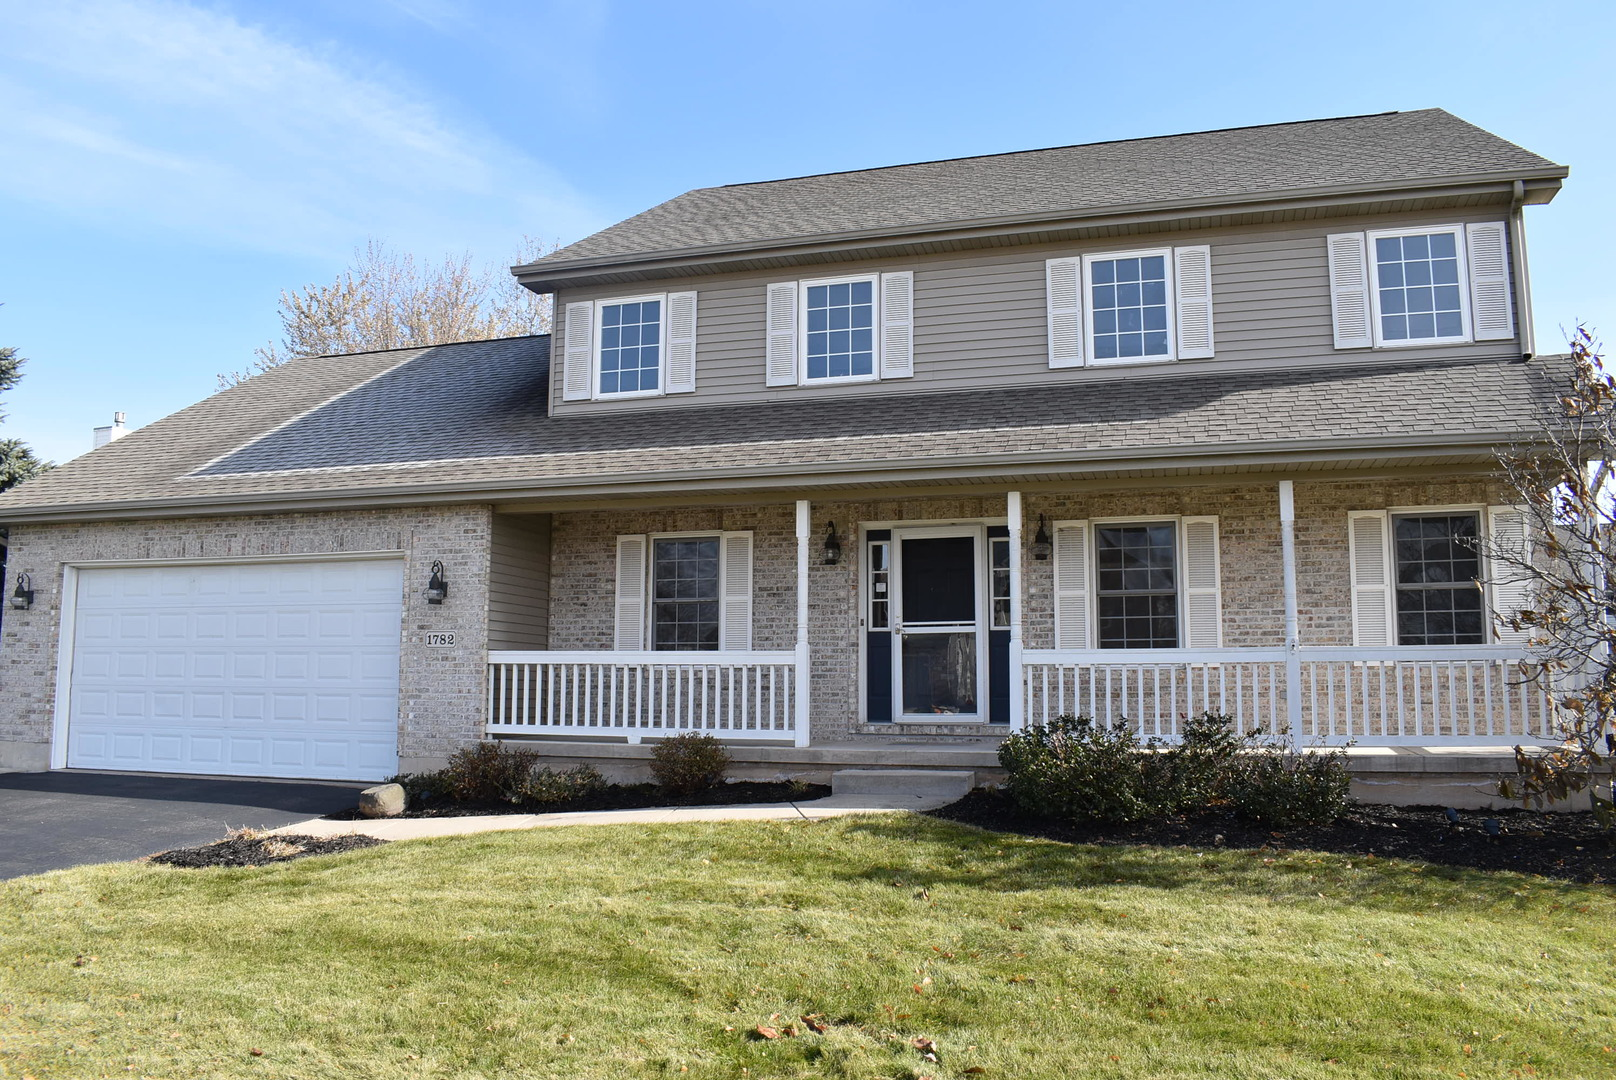 Photo for 1782 Briggs Street, Sycamore, IL 60178 (MLS # 10574103)